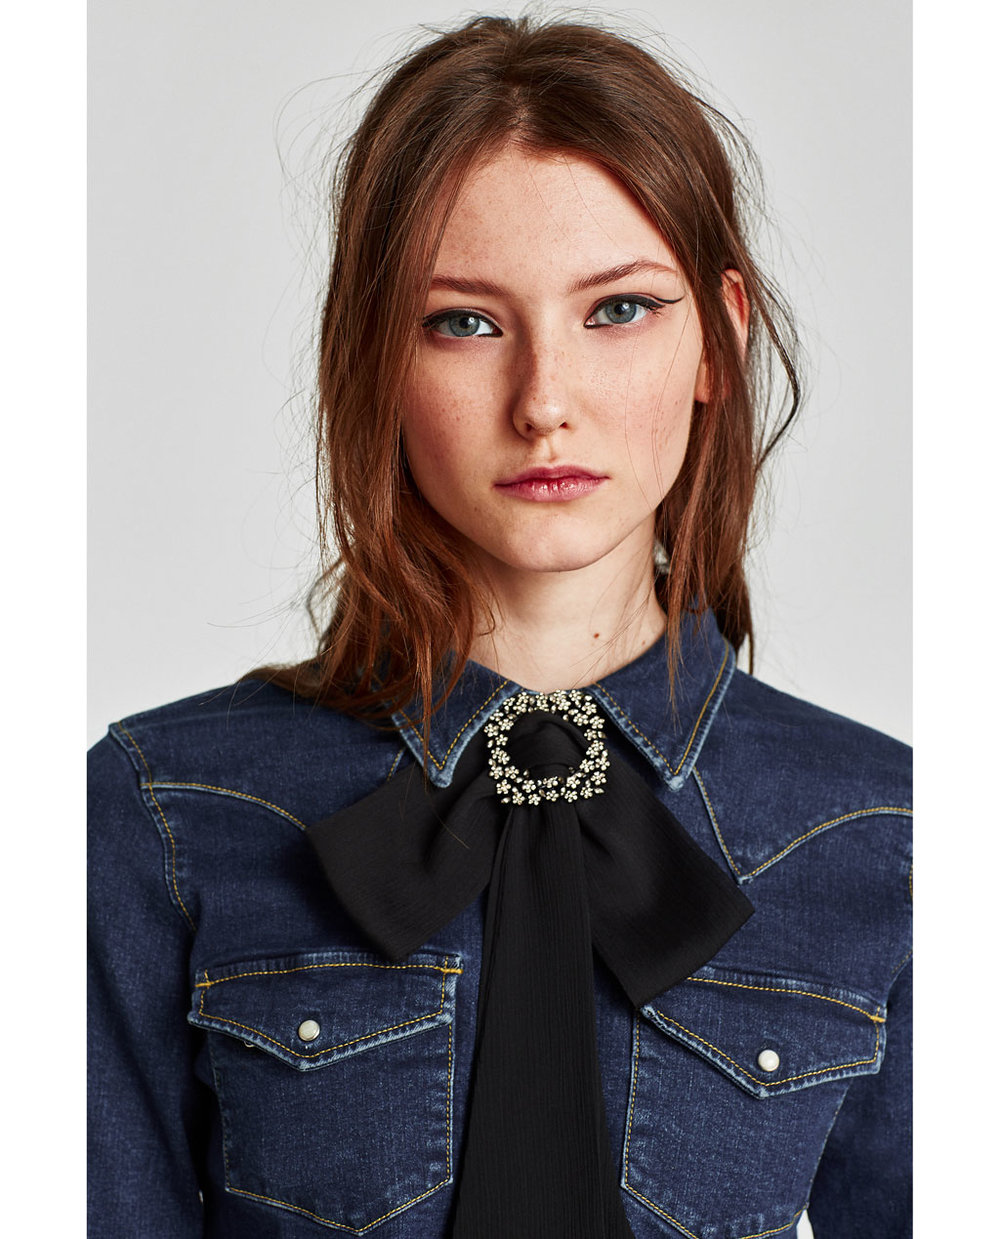 ZARA BOW NECKLACE WITH BROOCH